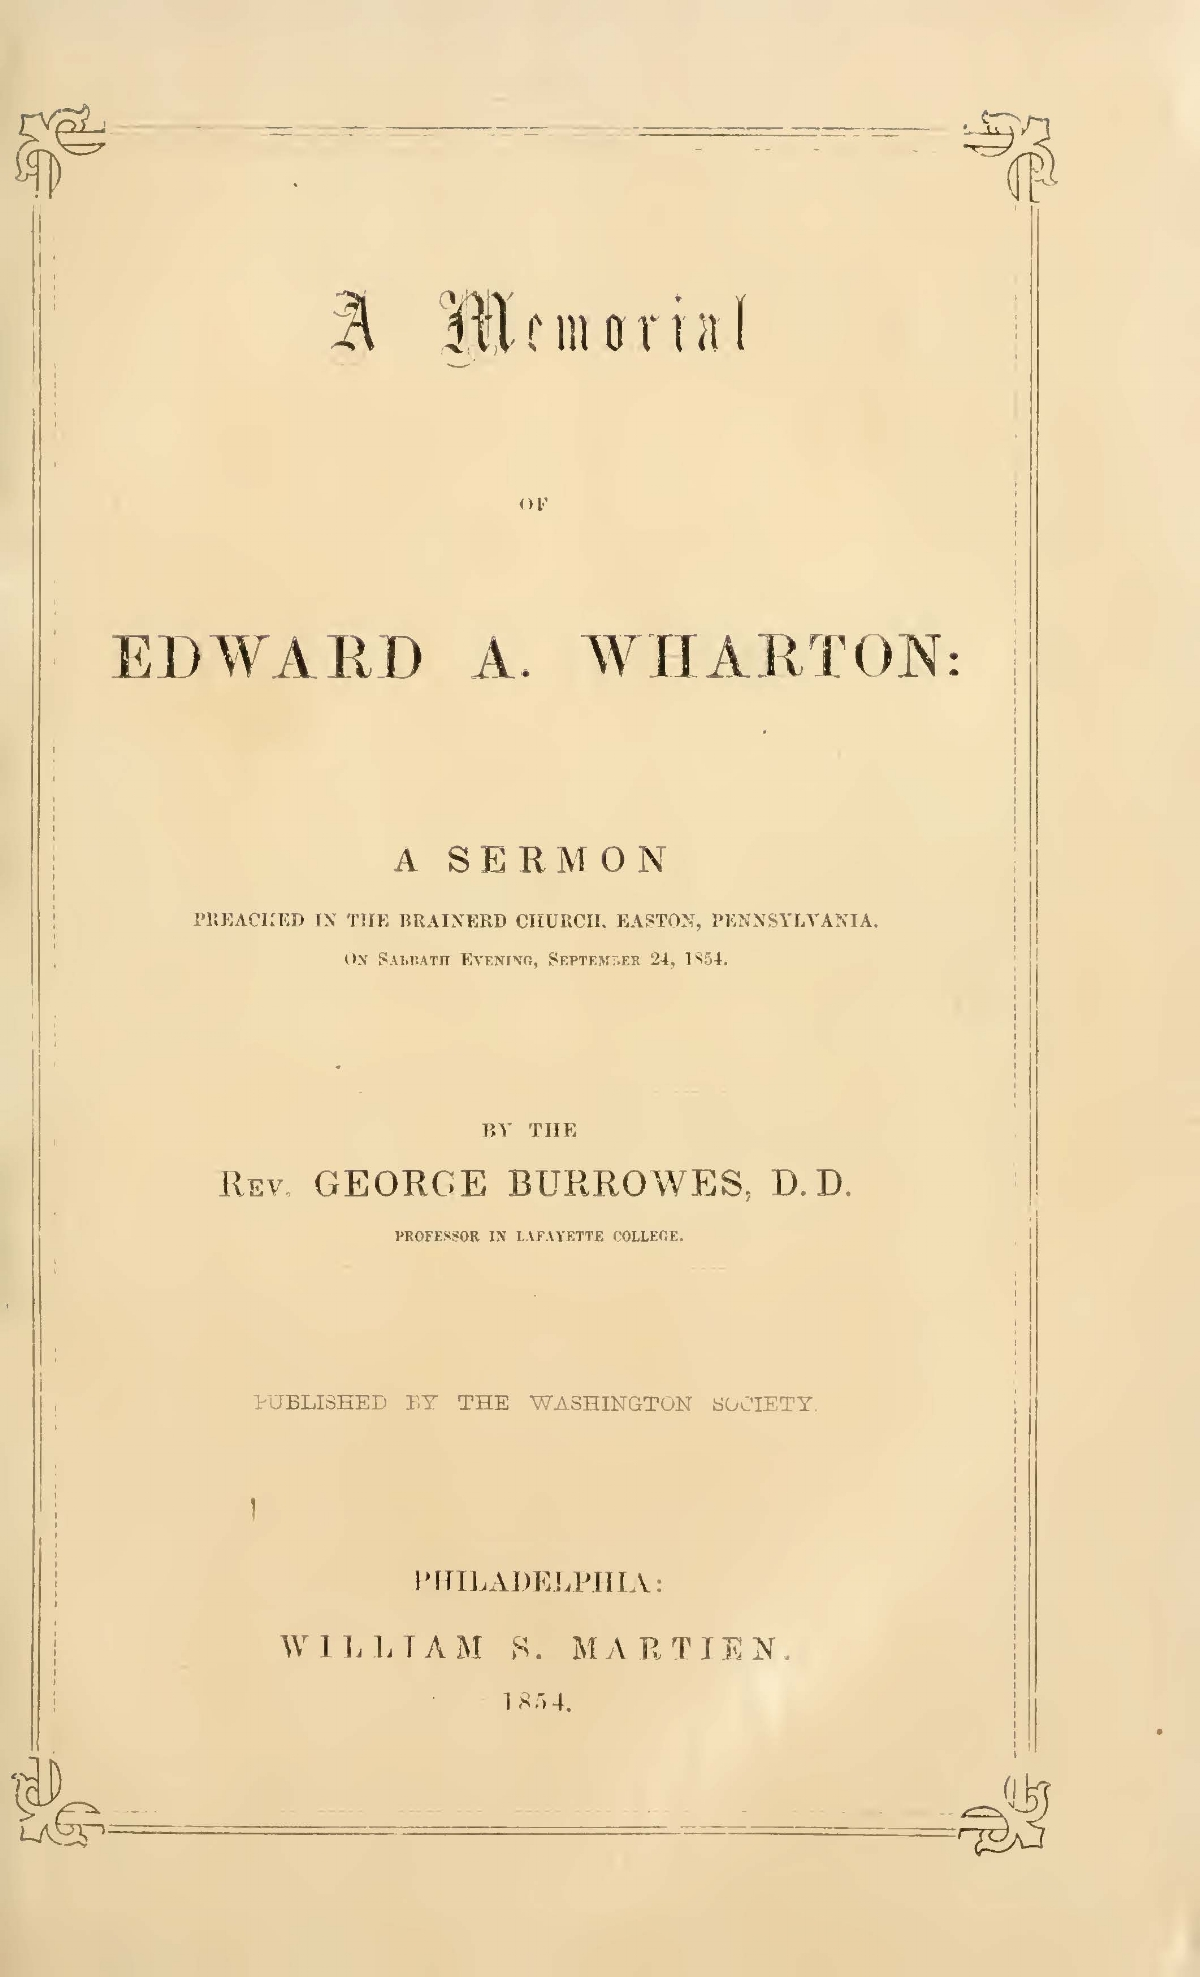 Burrowes, George, Memorial of Edward A. Wharton Title Page.jpg